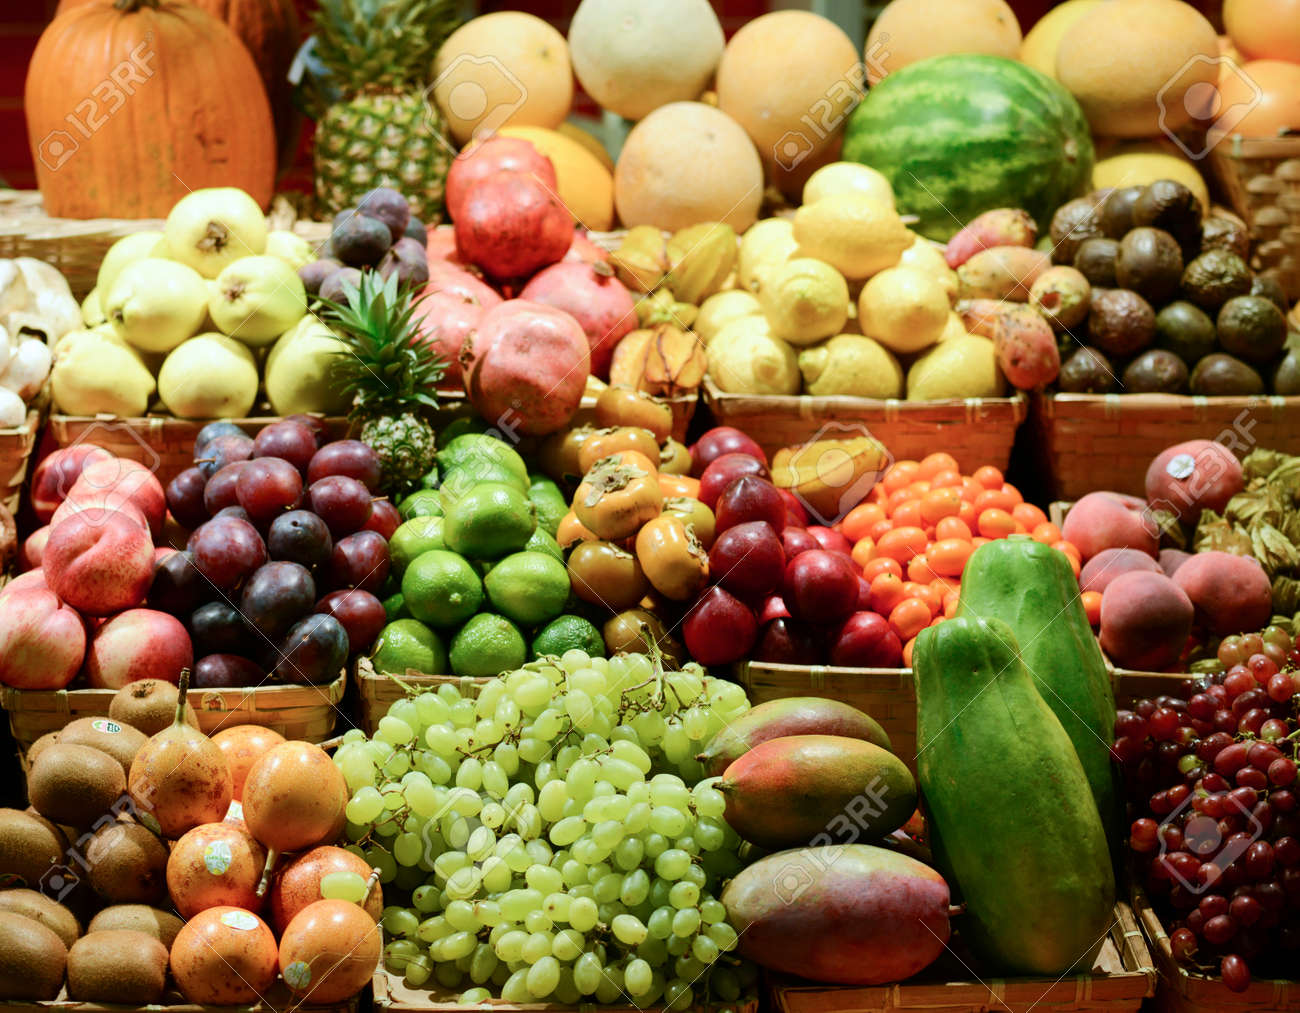 Fruit market with various colorful fresh fruits and vegetables - Market series - 23318357